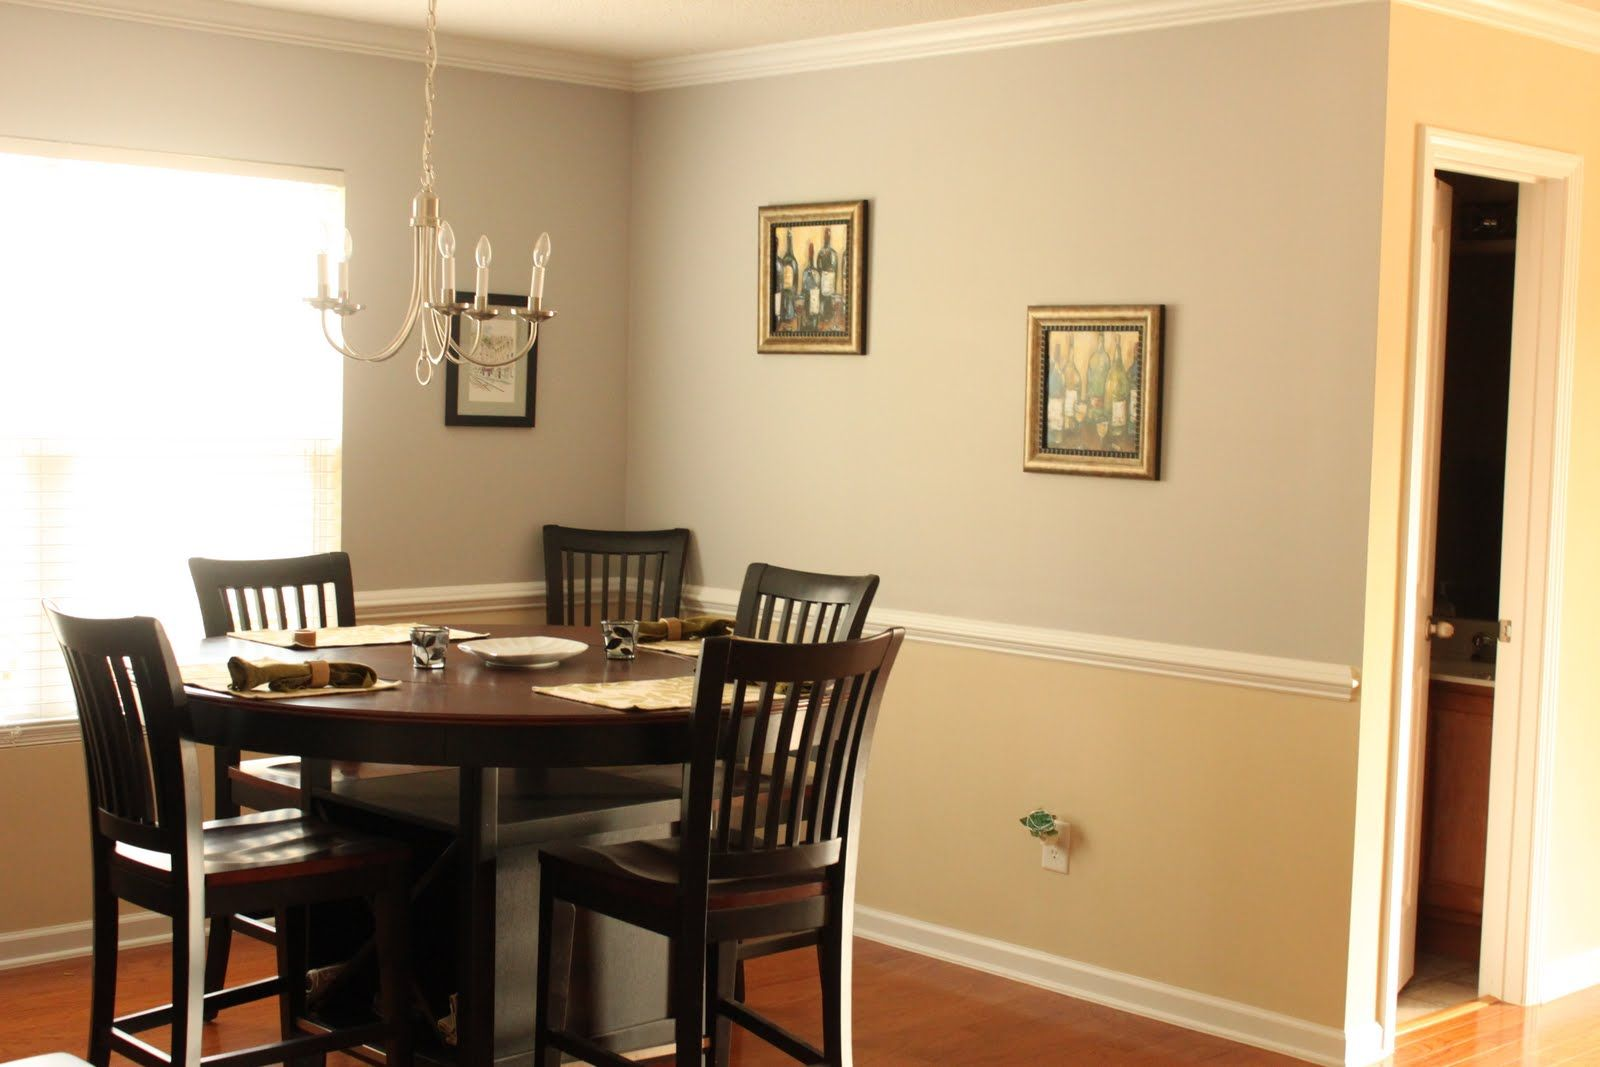 Gray and beige scheme best color to paint a interior room for Brown interior paint colors